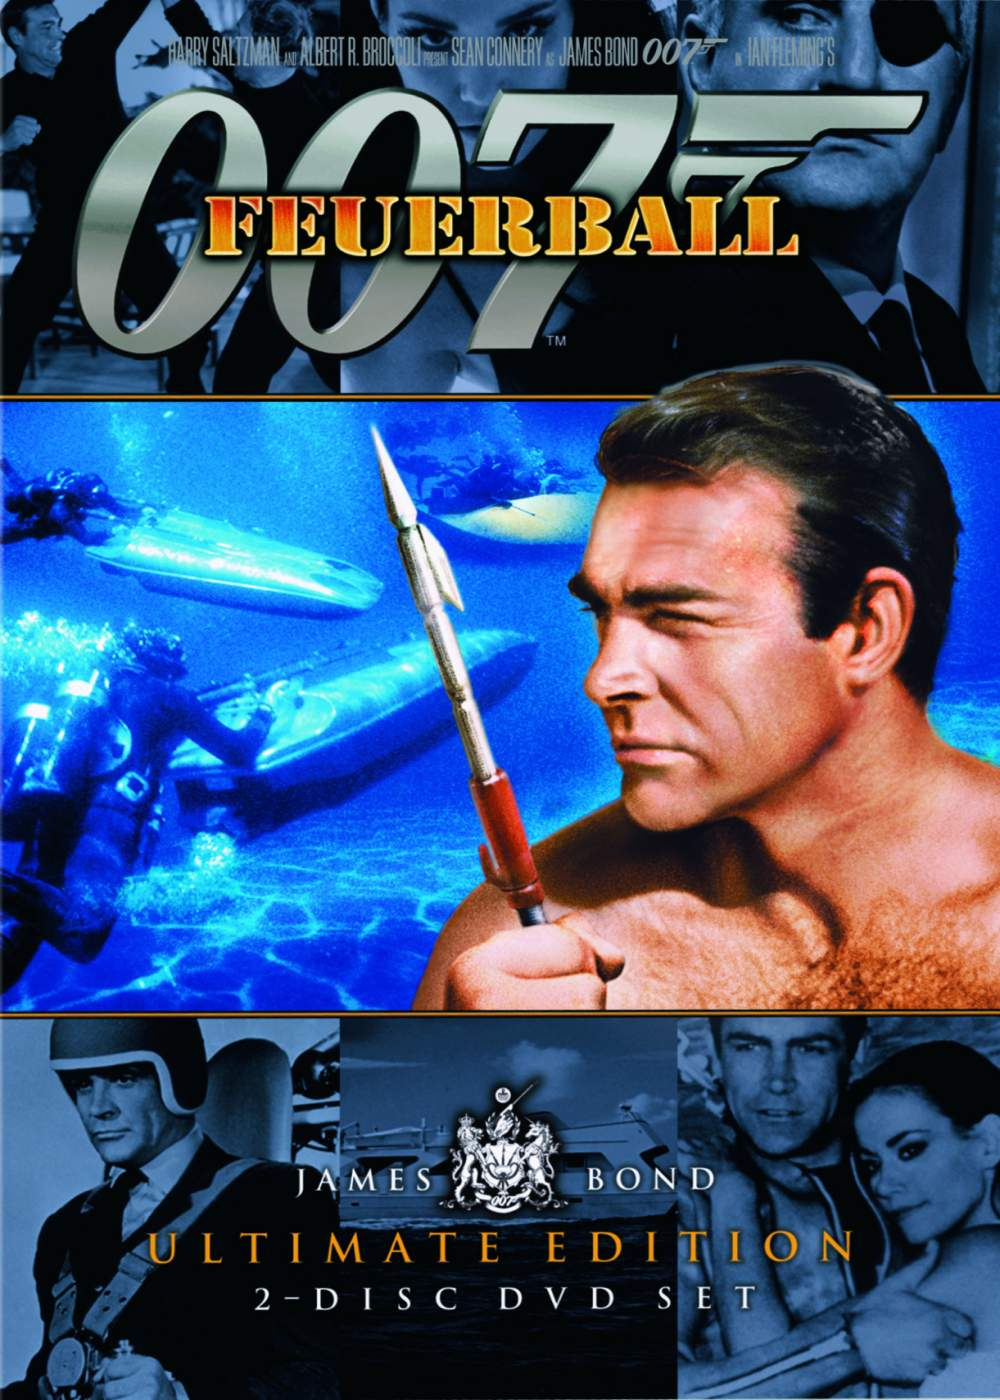 James Bond Feuerball Stream